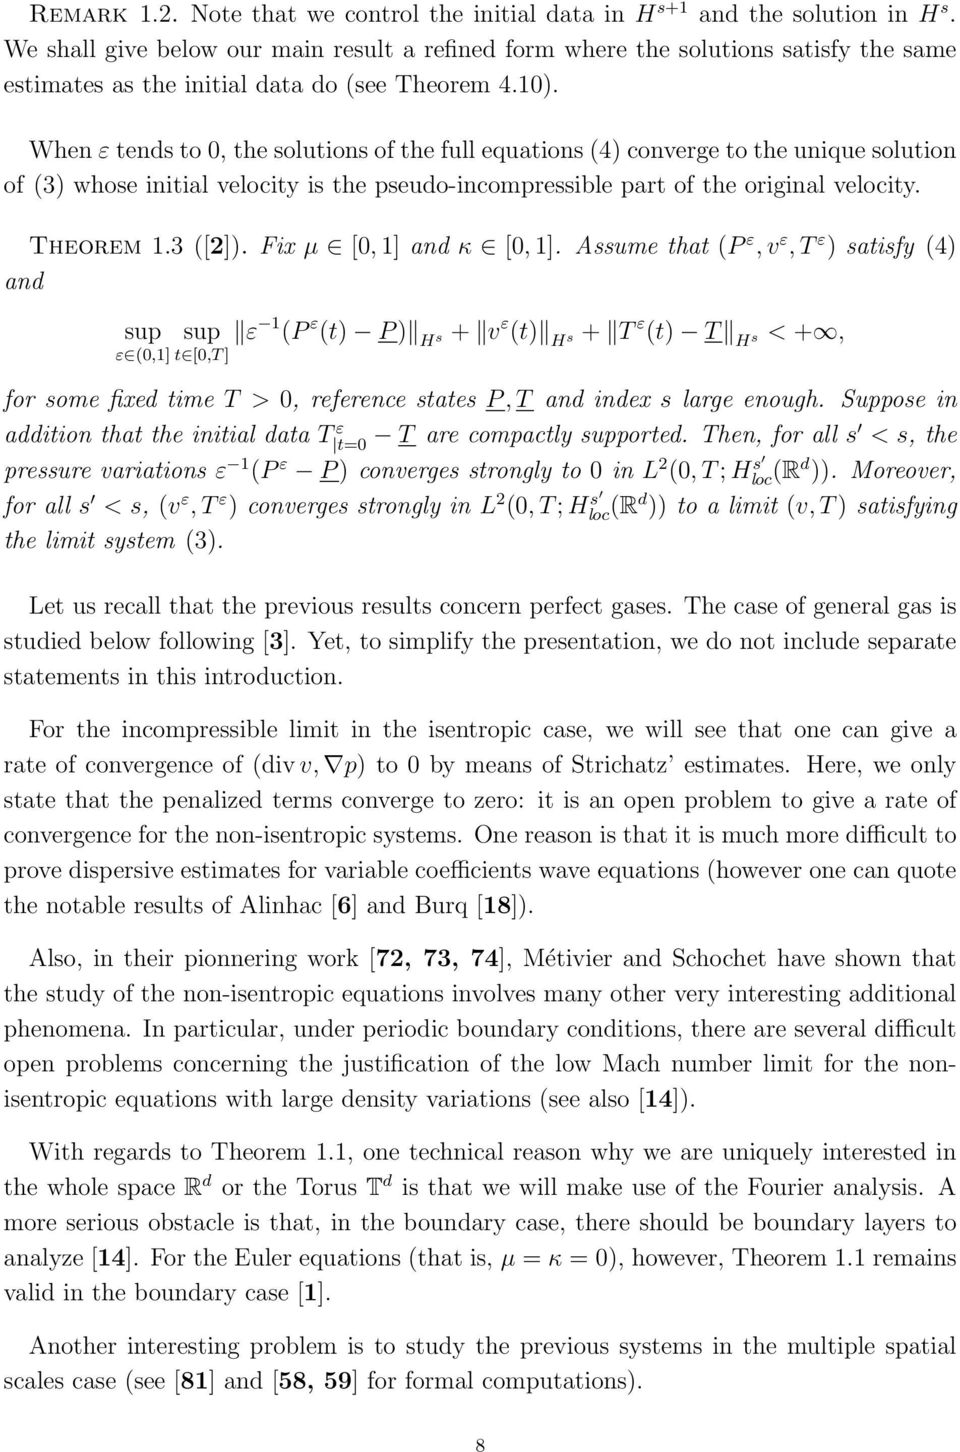 When ε tends to, the solutions of the full equations (4) converge to the unique solution of (3) whose initial velocity is the pseudo-incompressible part of the original velocity. Theorem 1.3 ([2]).